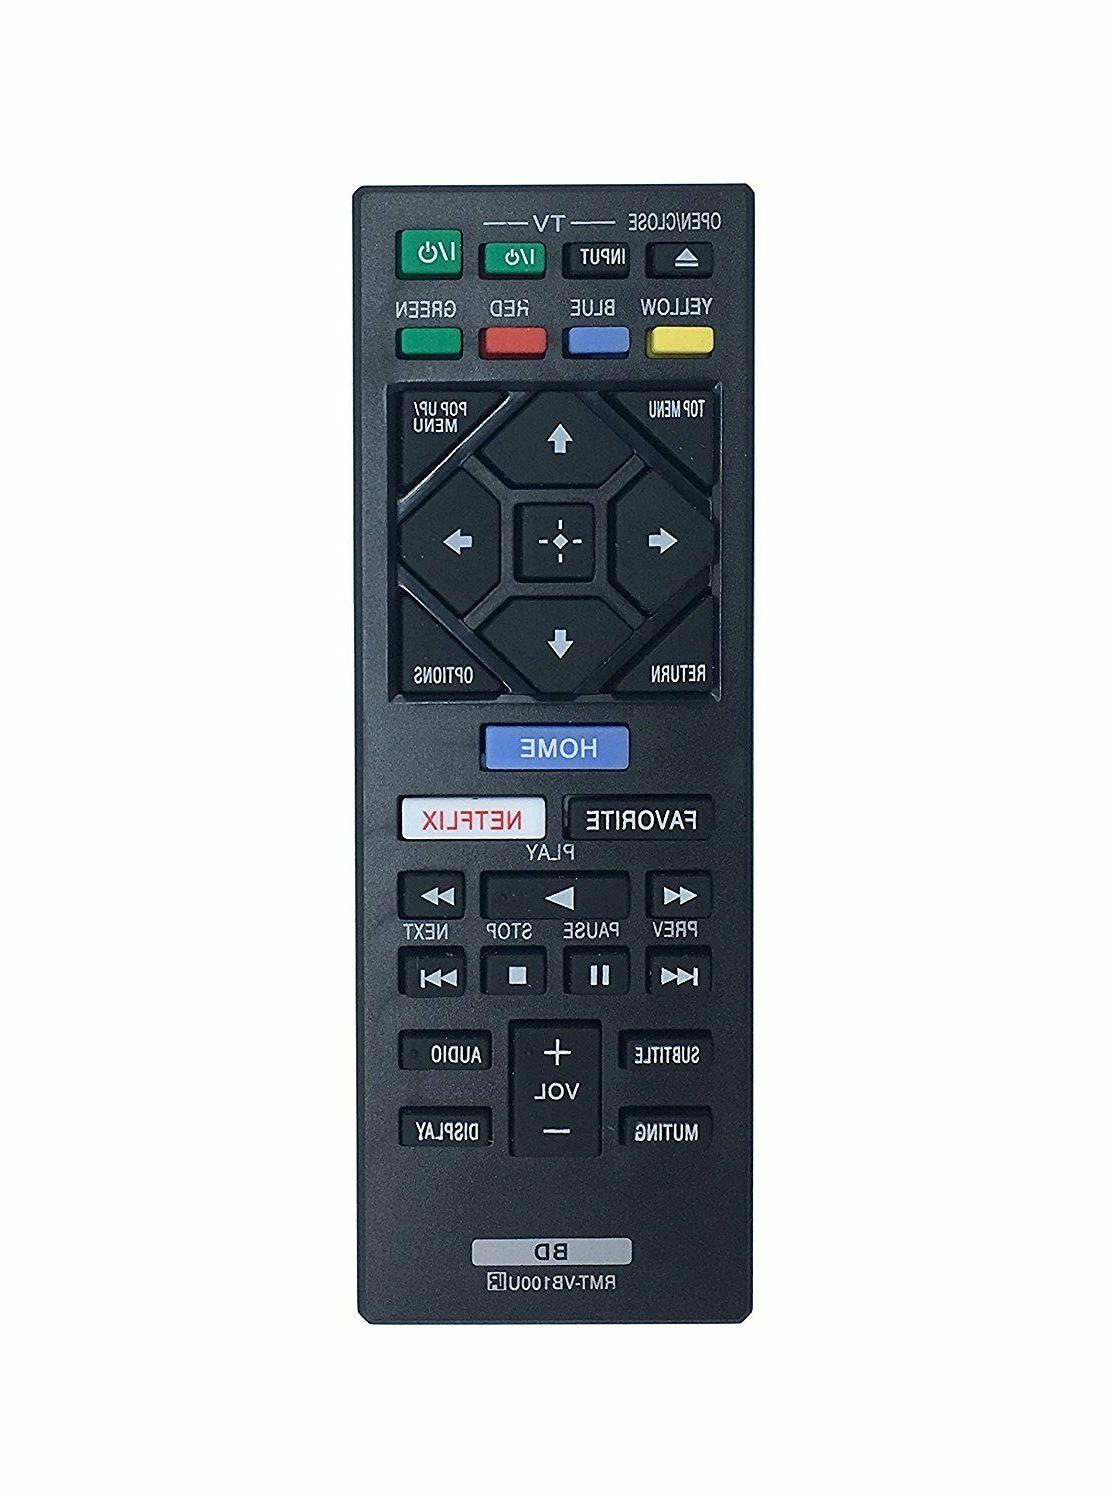 New RMT-VB100U Remote for Sony Blu-ray DVD Player BDP-S1500